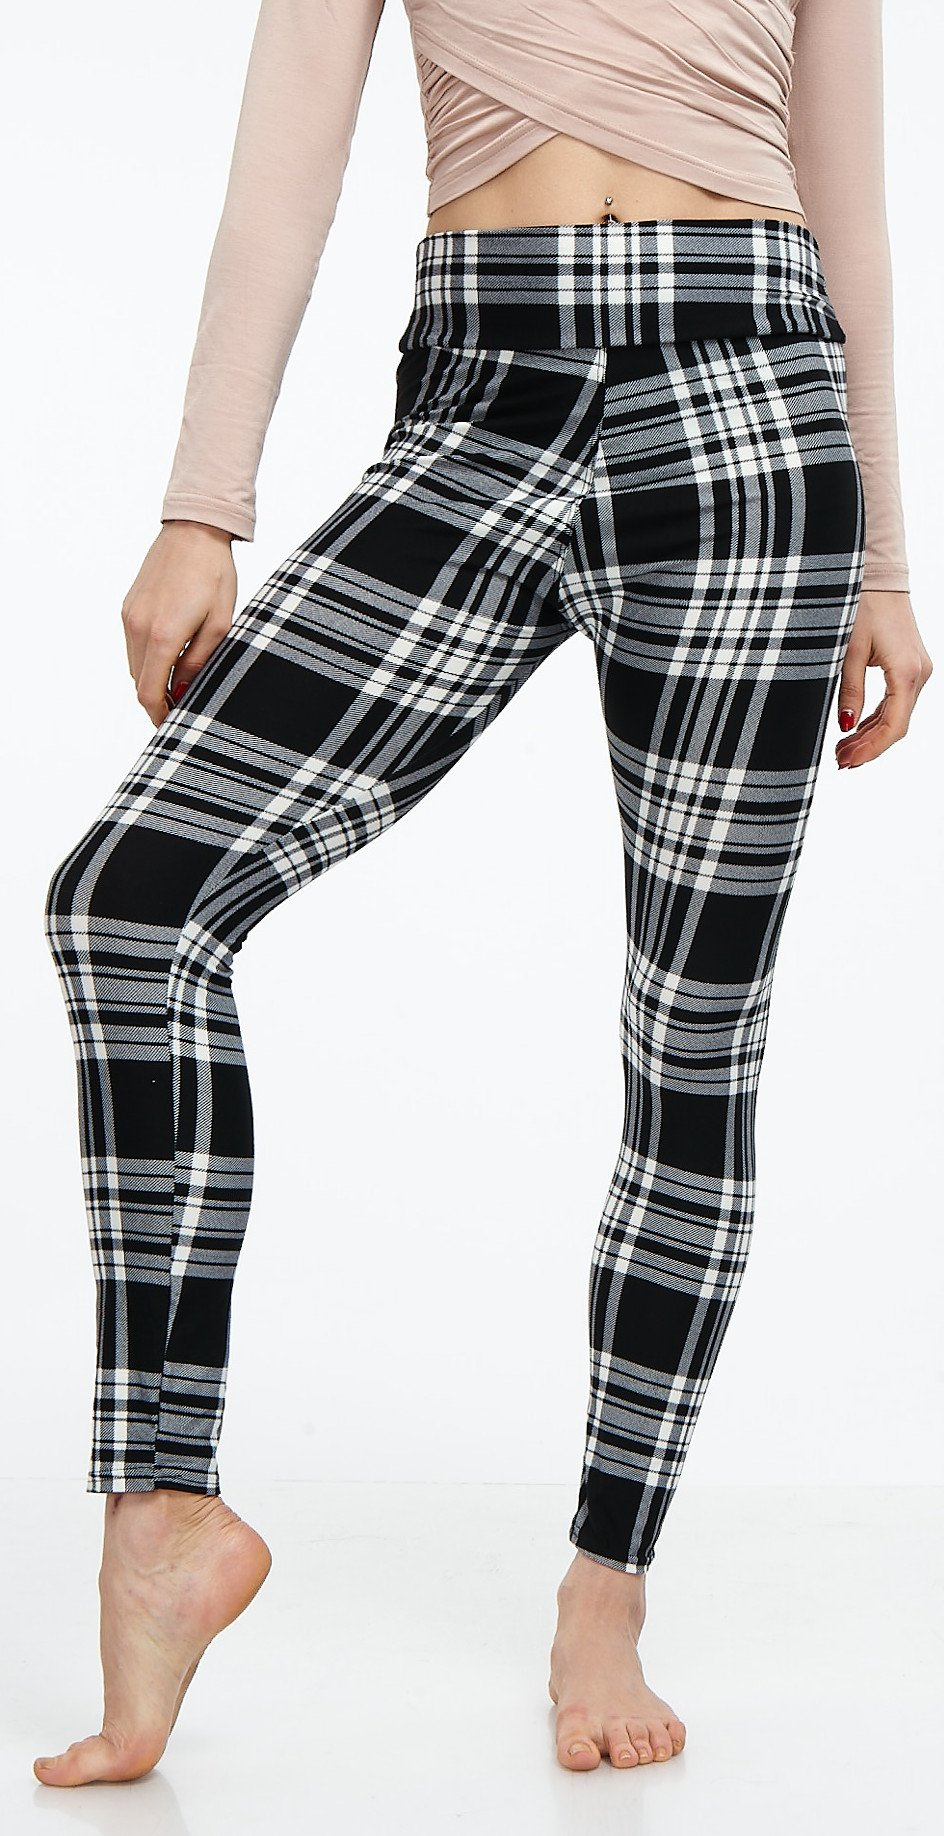 LMB Lush Moda Extra Soft Leggings with Designs- Variety of Prints Yoga Waist - 769YF Black White Plaid B5 by LMB (Image #2)